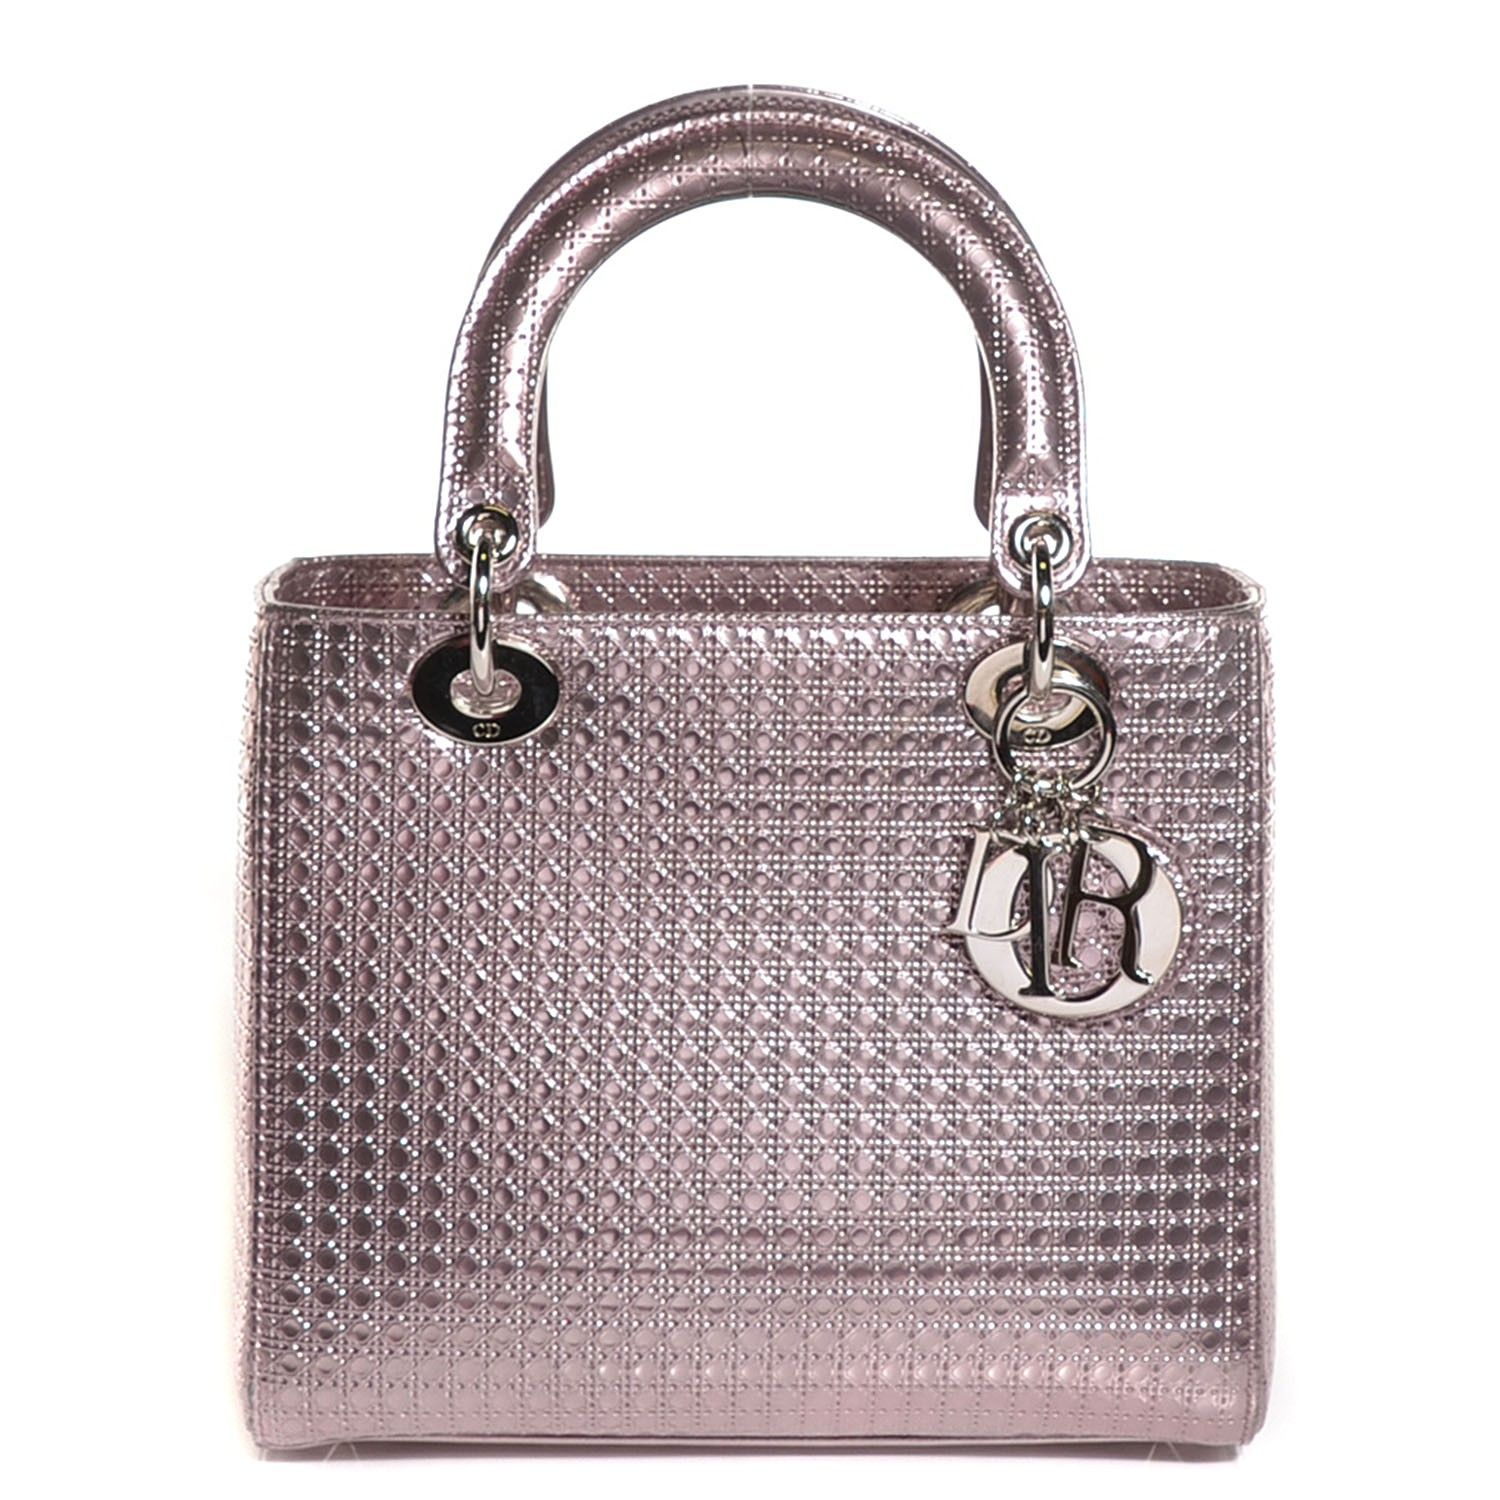 13e76545838 CHRISTIAN DIOR Metallic Perforated Calfskin Micro Cannage Lady Dior Pink